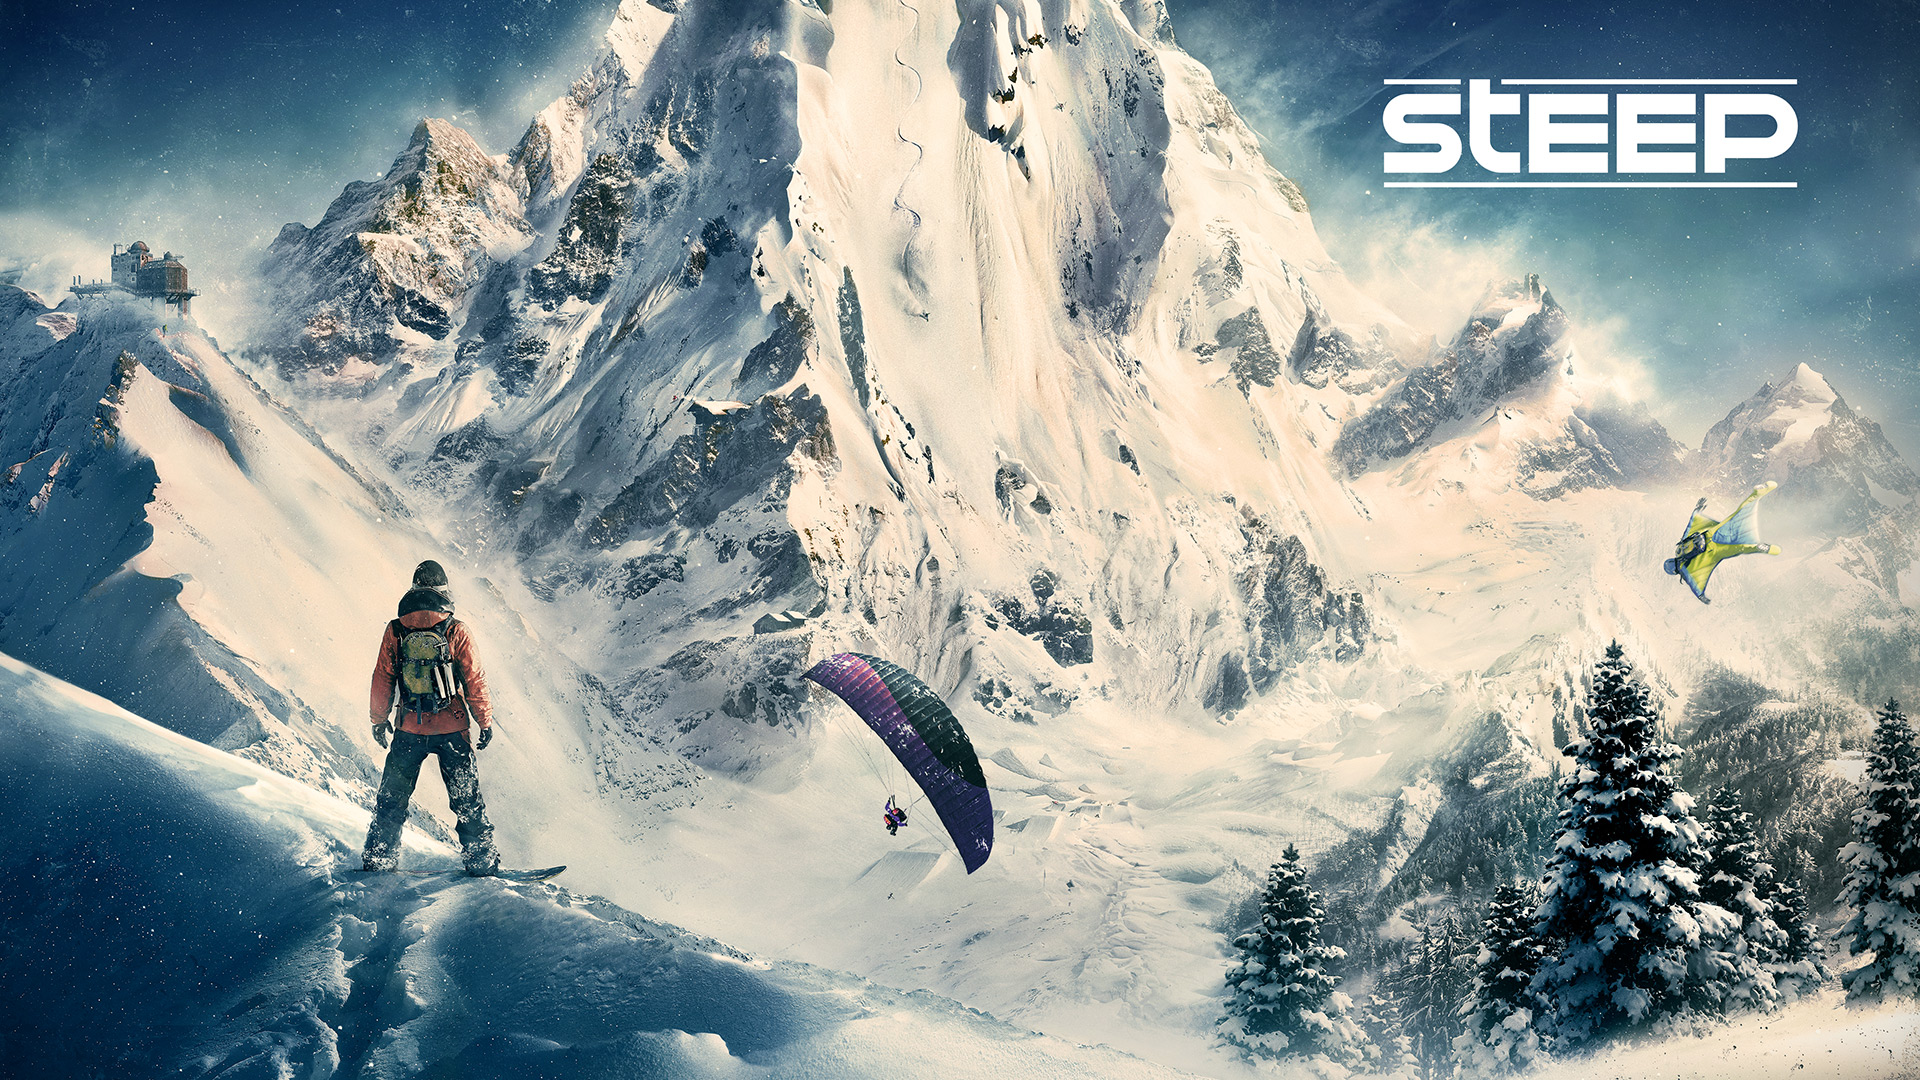 steep-cover-image-featured.jpg